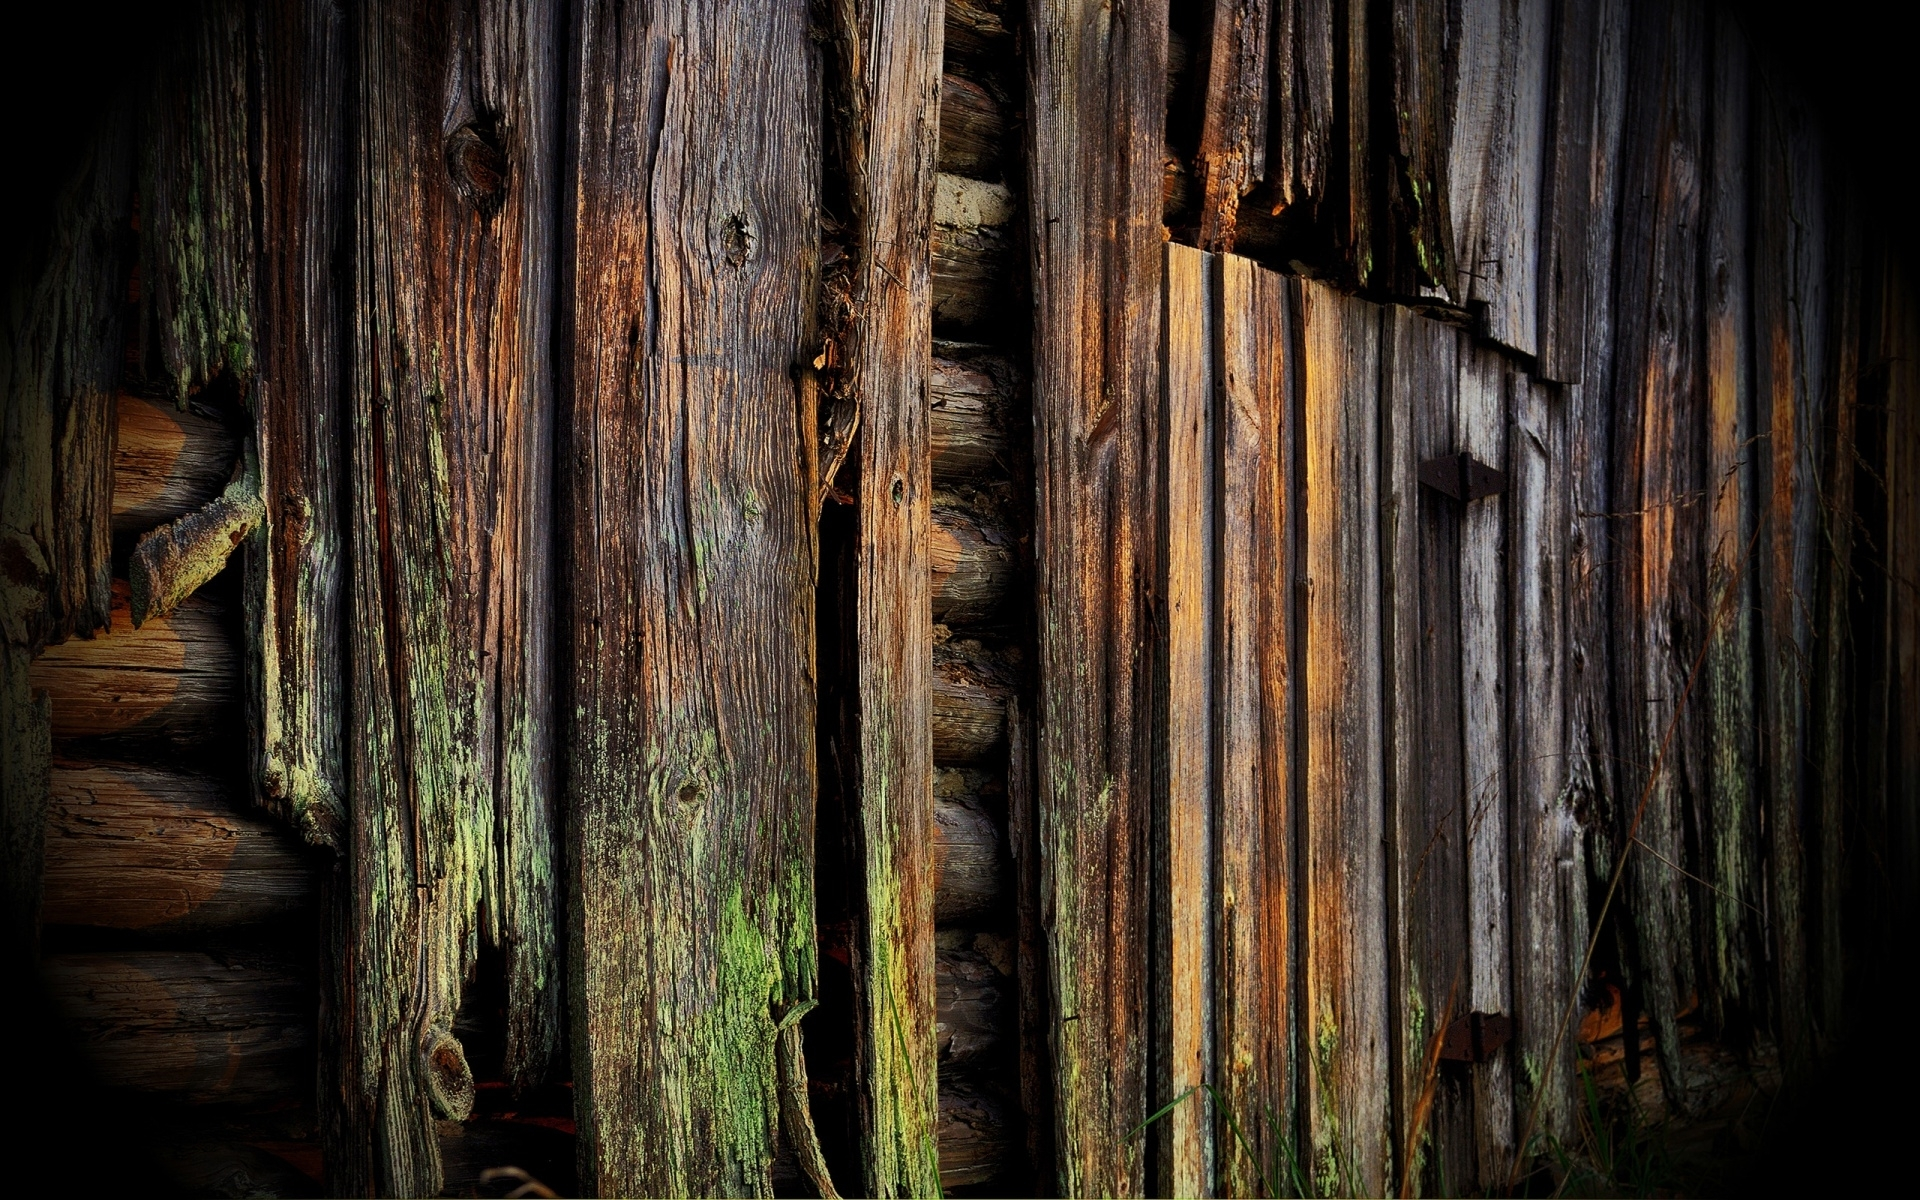 wall ruin decay rustic wood abstract wallpaper background